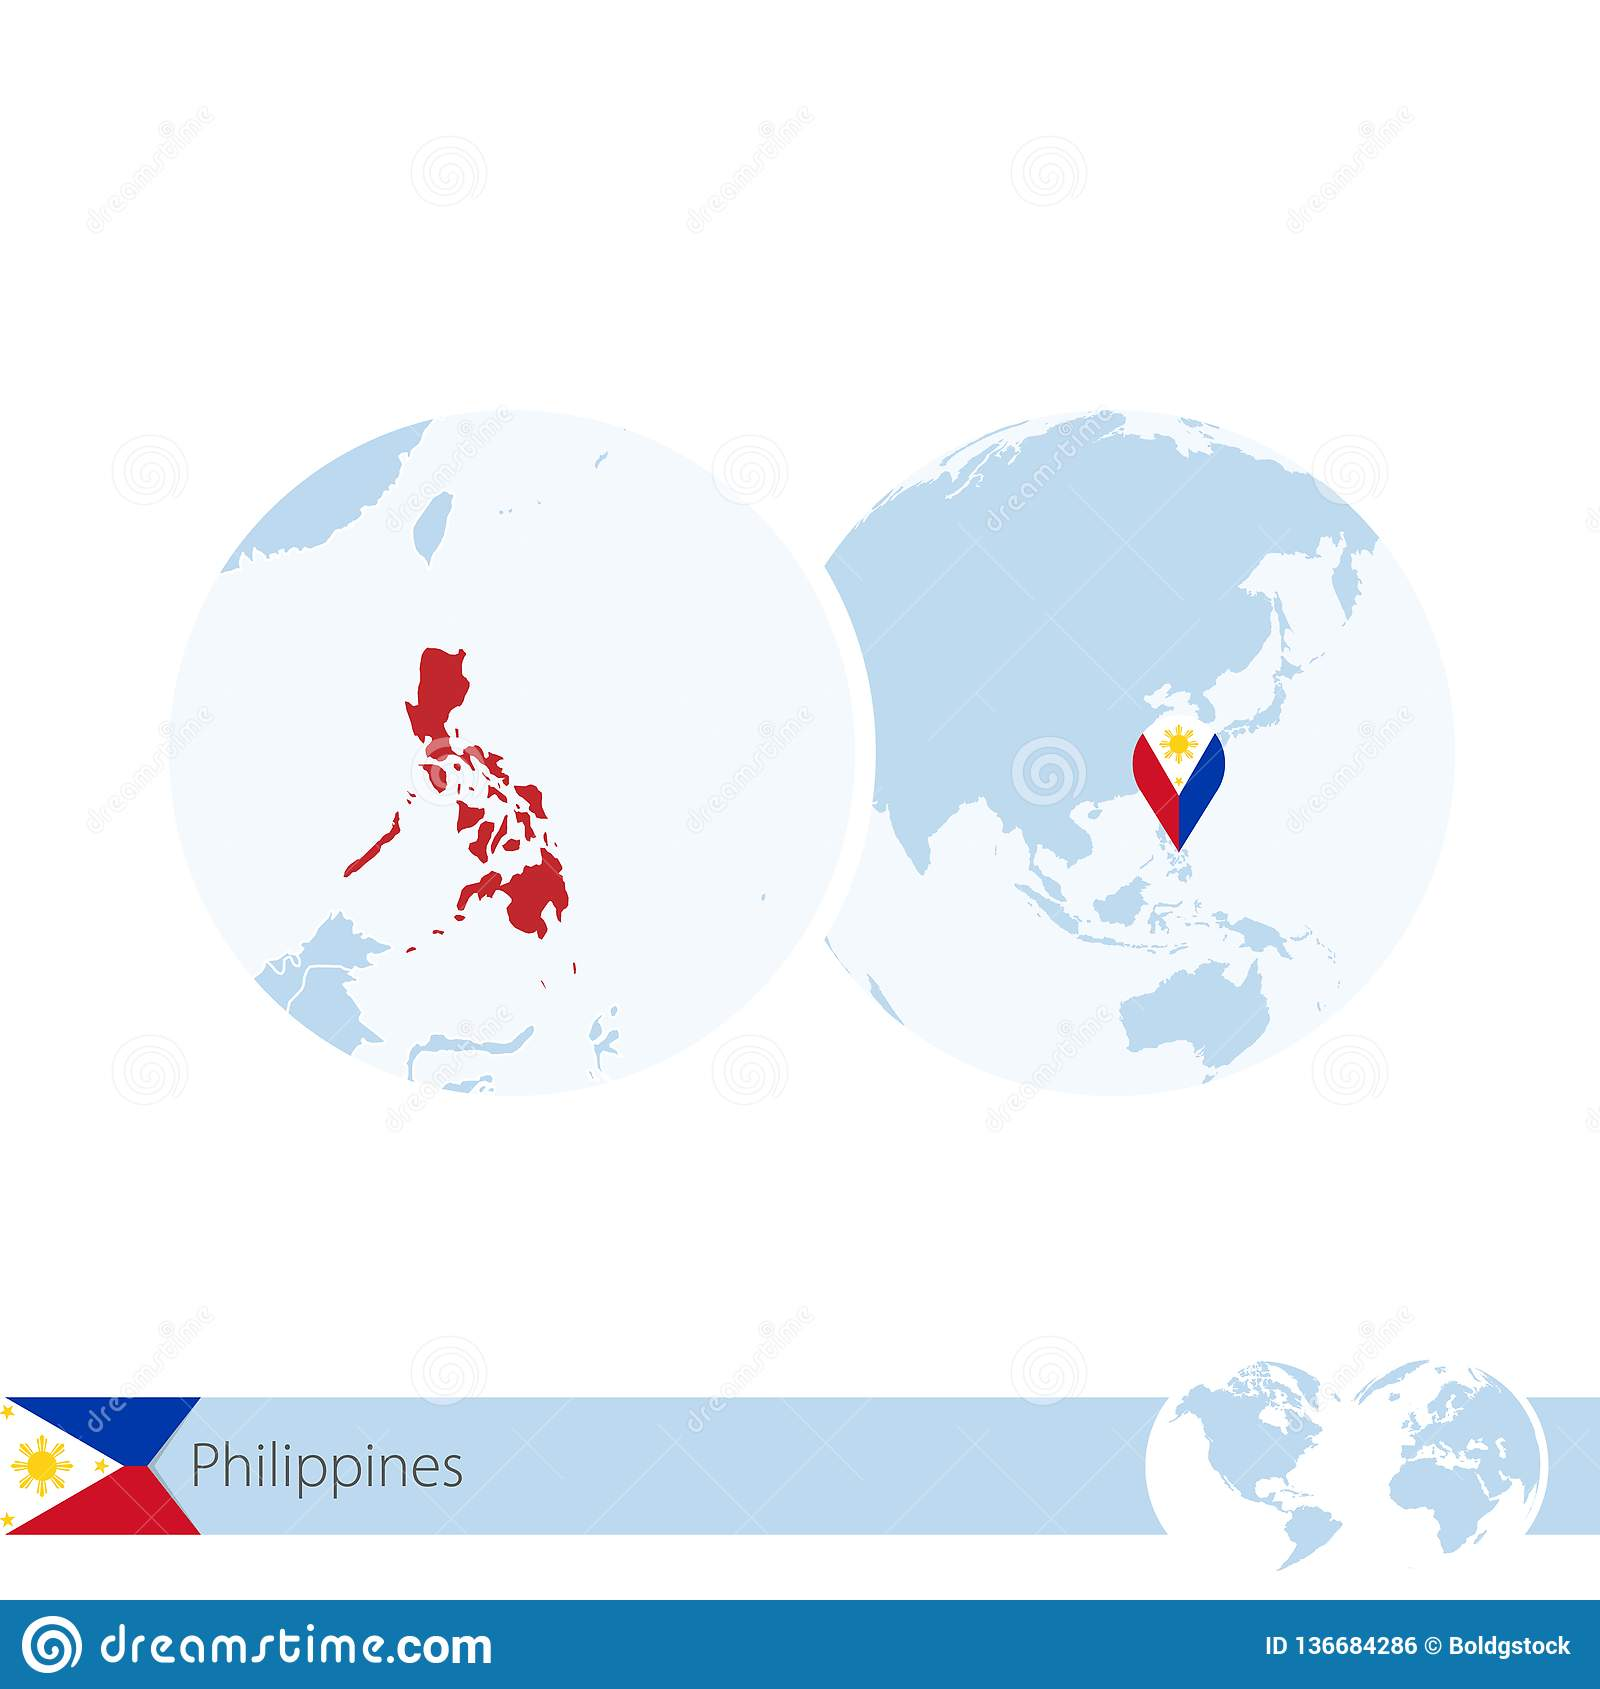 Philippines On World Globe With Flag And Regional Map Of Philippines on map showing philippines, map of philippines in imperialism, map of philippines in asia, map of bohol island philippines, map of morocco and surrounding countries, map of philippines on world map,